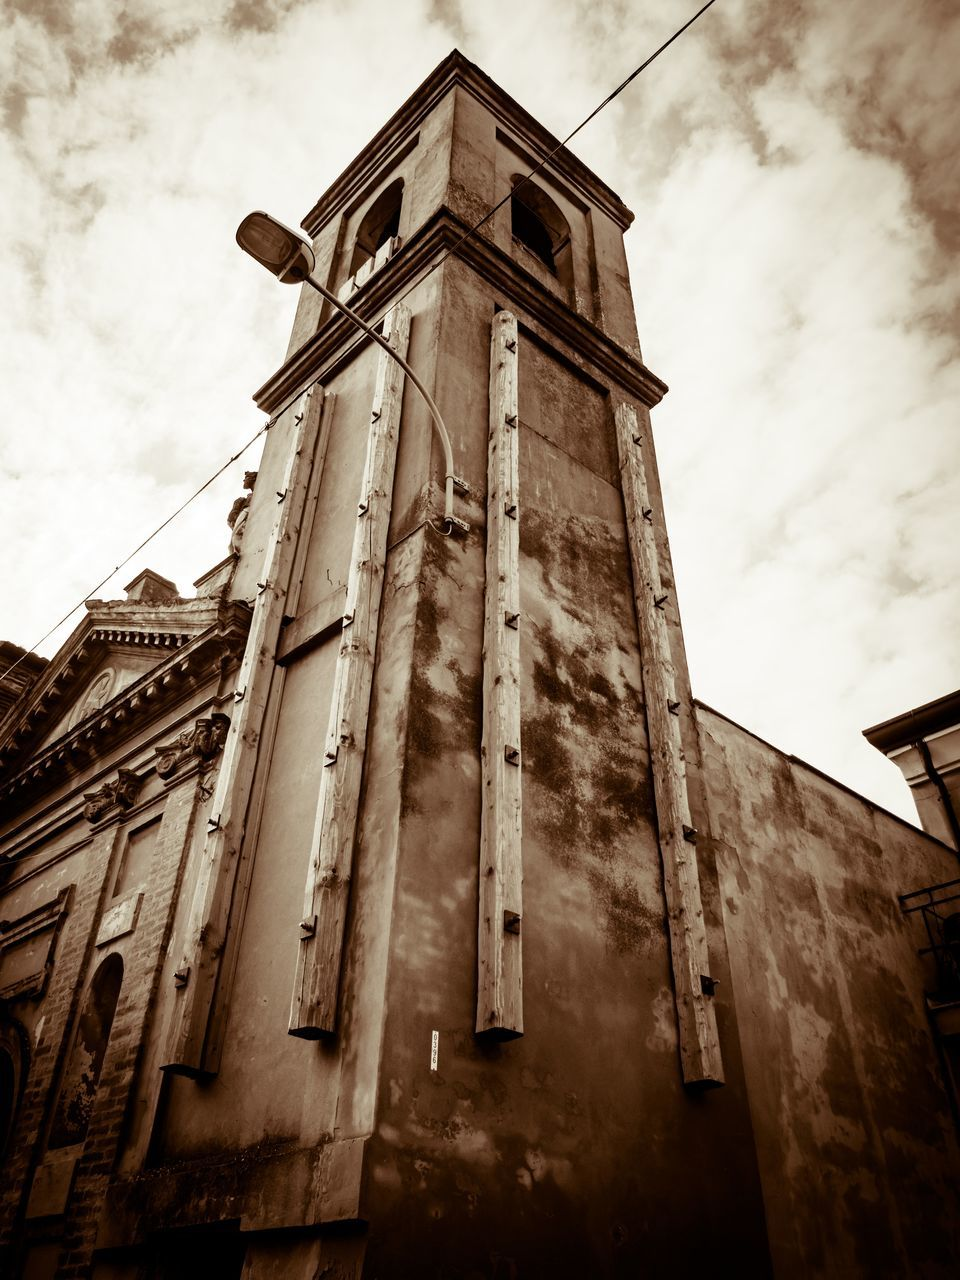 low angle view, architecture, built structure, building exterior, sky, cloud - sky, no people, history, religion, place of worship, day, outdoors, spirituality, clock tower, bell tower, clock, ancient civilization, city